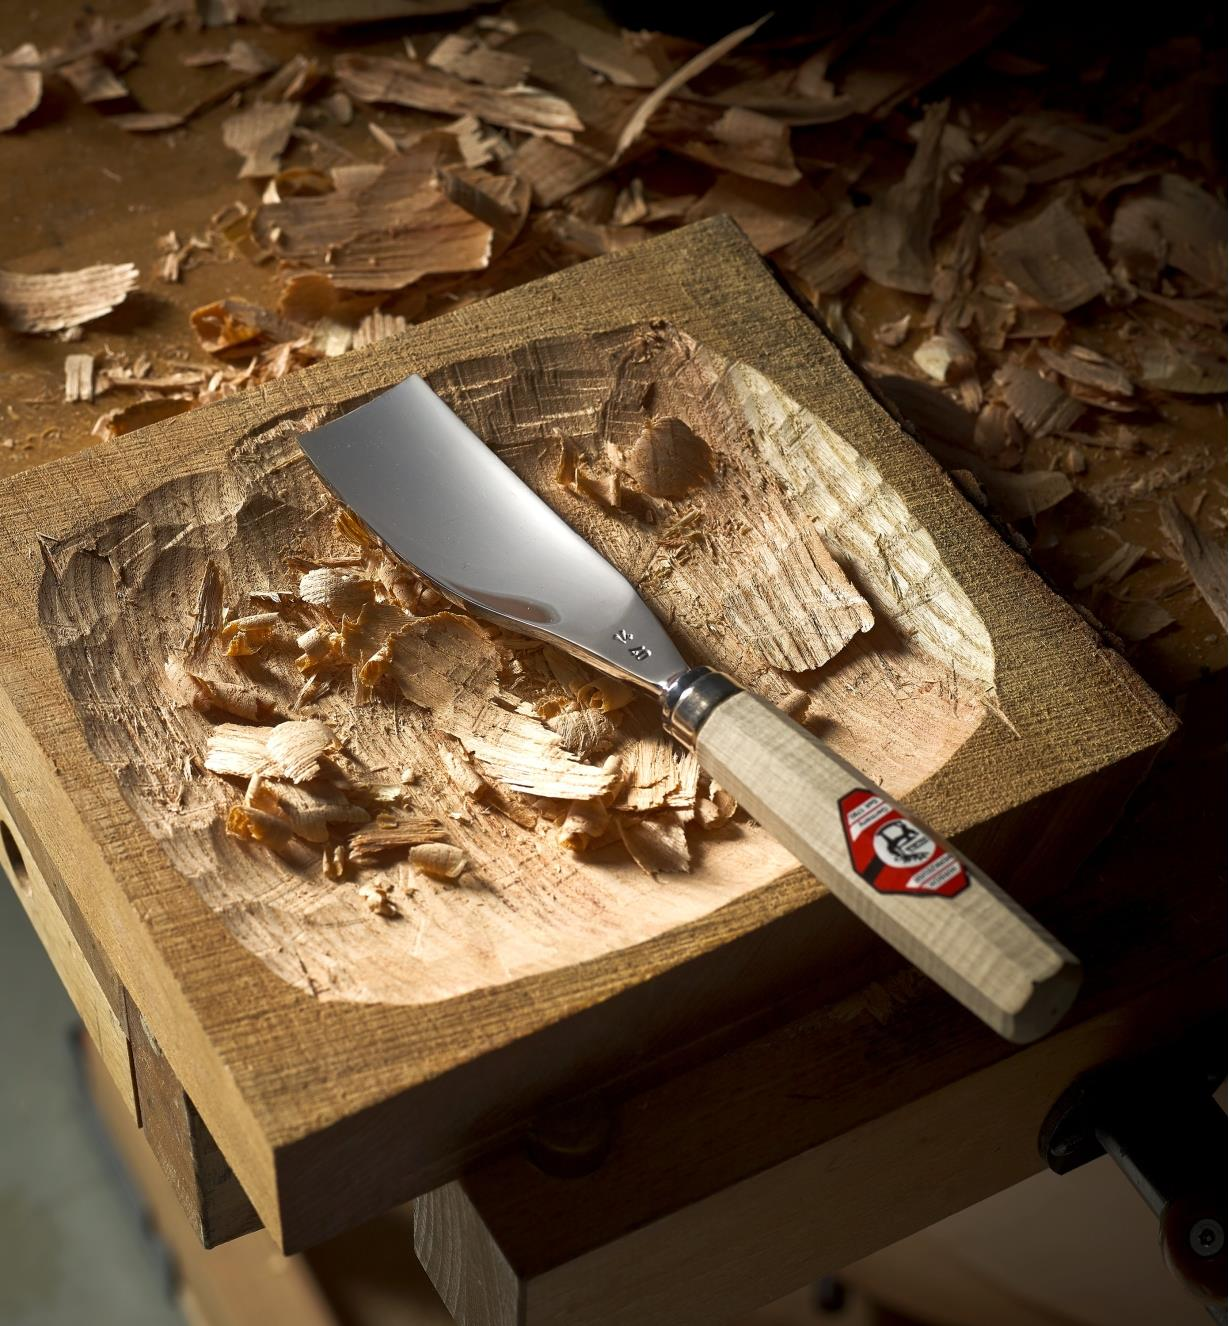 The Hirsch large #5 bent gouge lying on a shallow wooden bowl covered in shavings